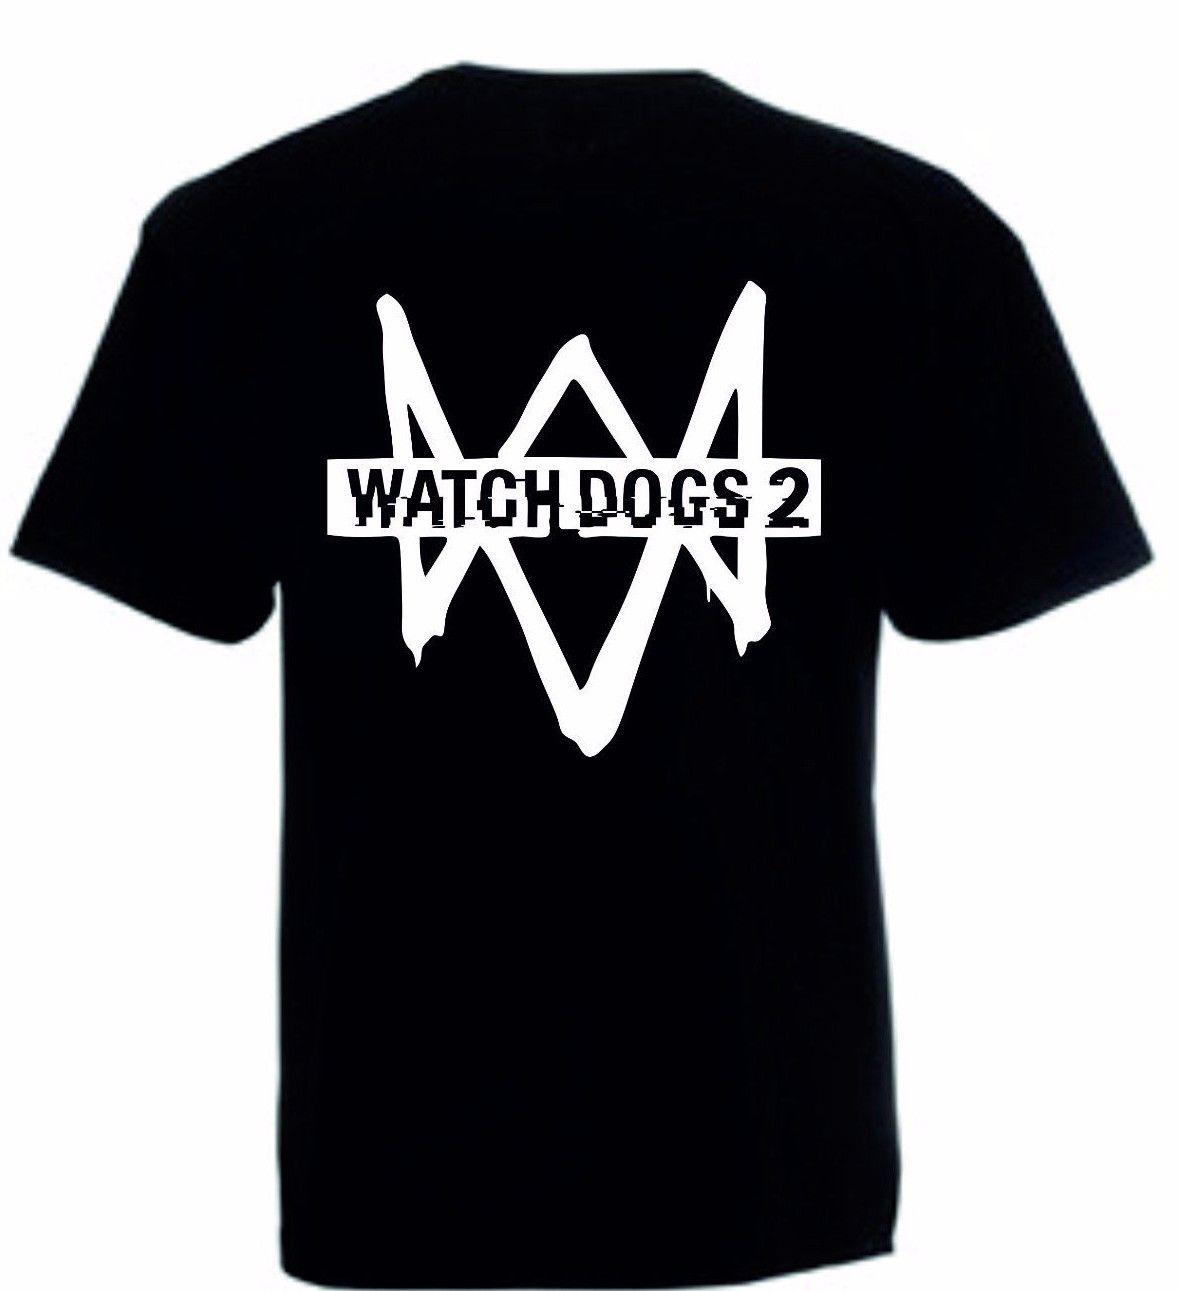 Watchdogs 2 T-Shirt or Vest Gaming Tee Mens Top Video Games Clothing New T Shirts Funny Tops Tee New Unisex Funny Tops